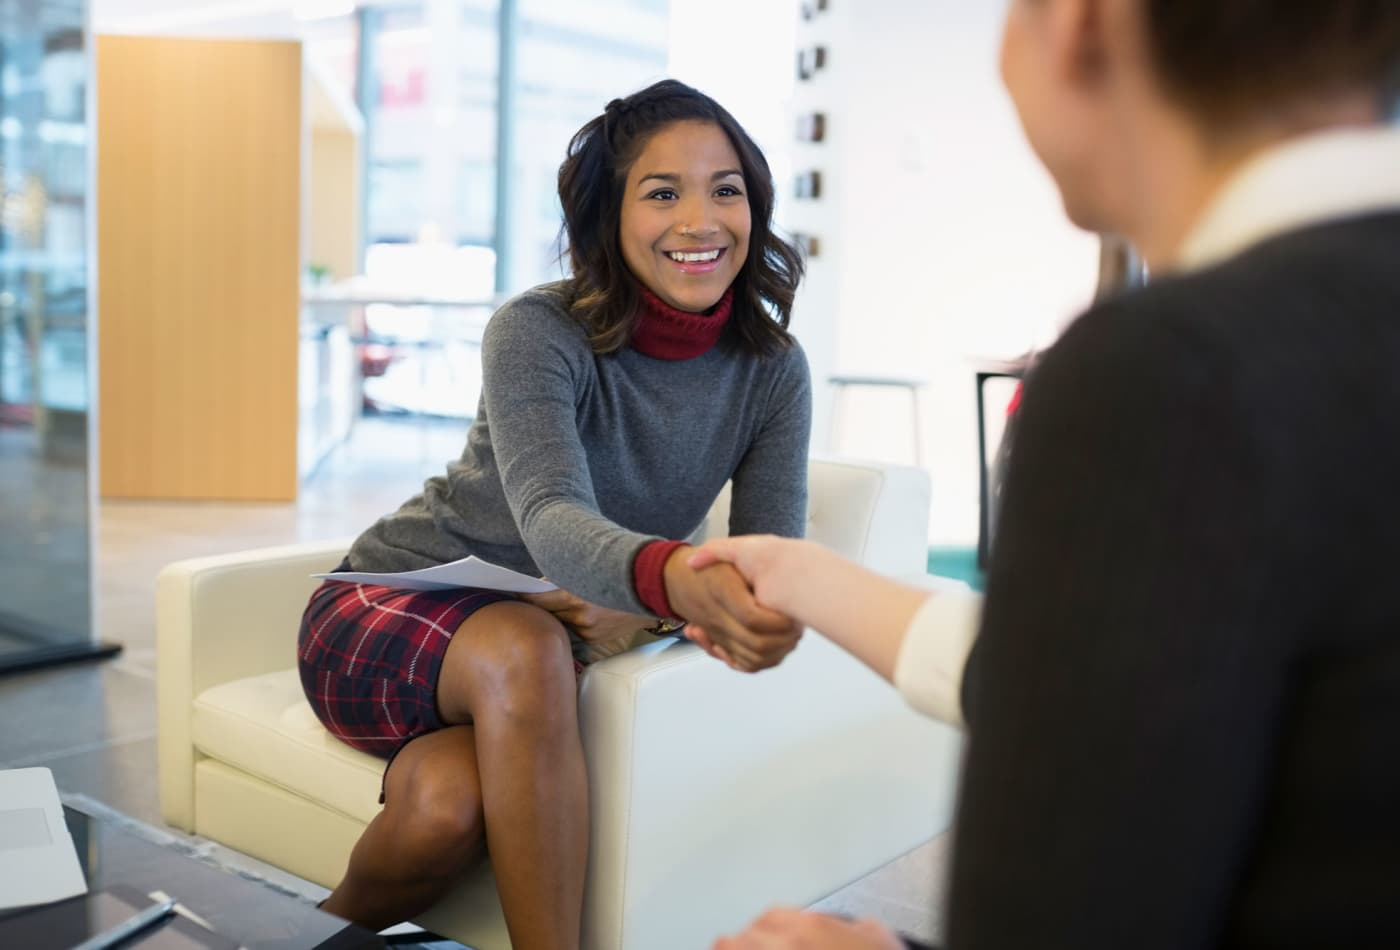 8 questions you should absolutely ask an interviewer